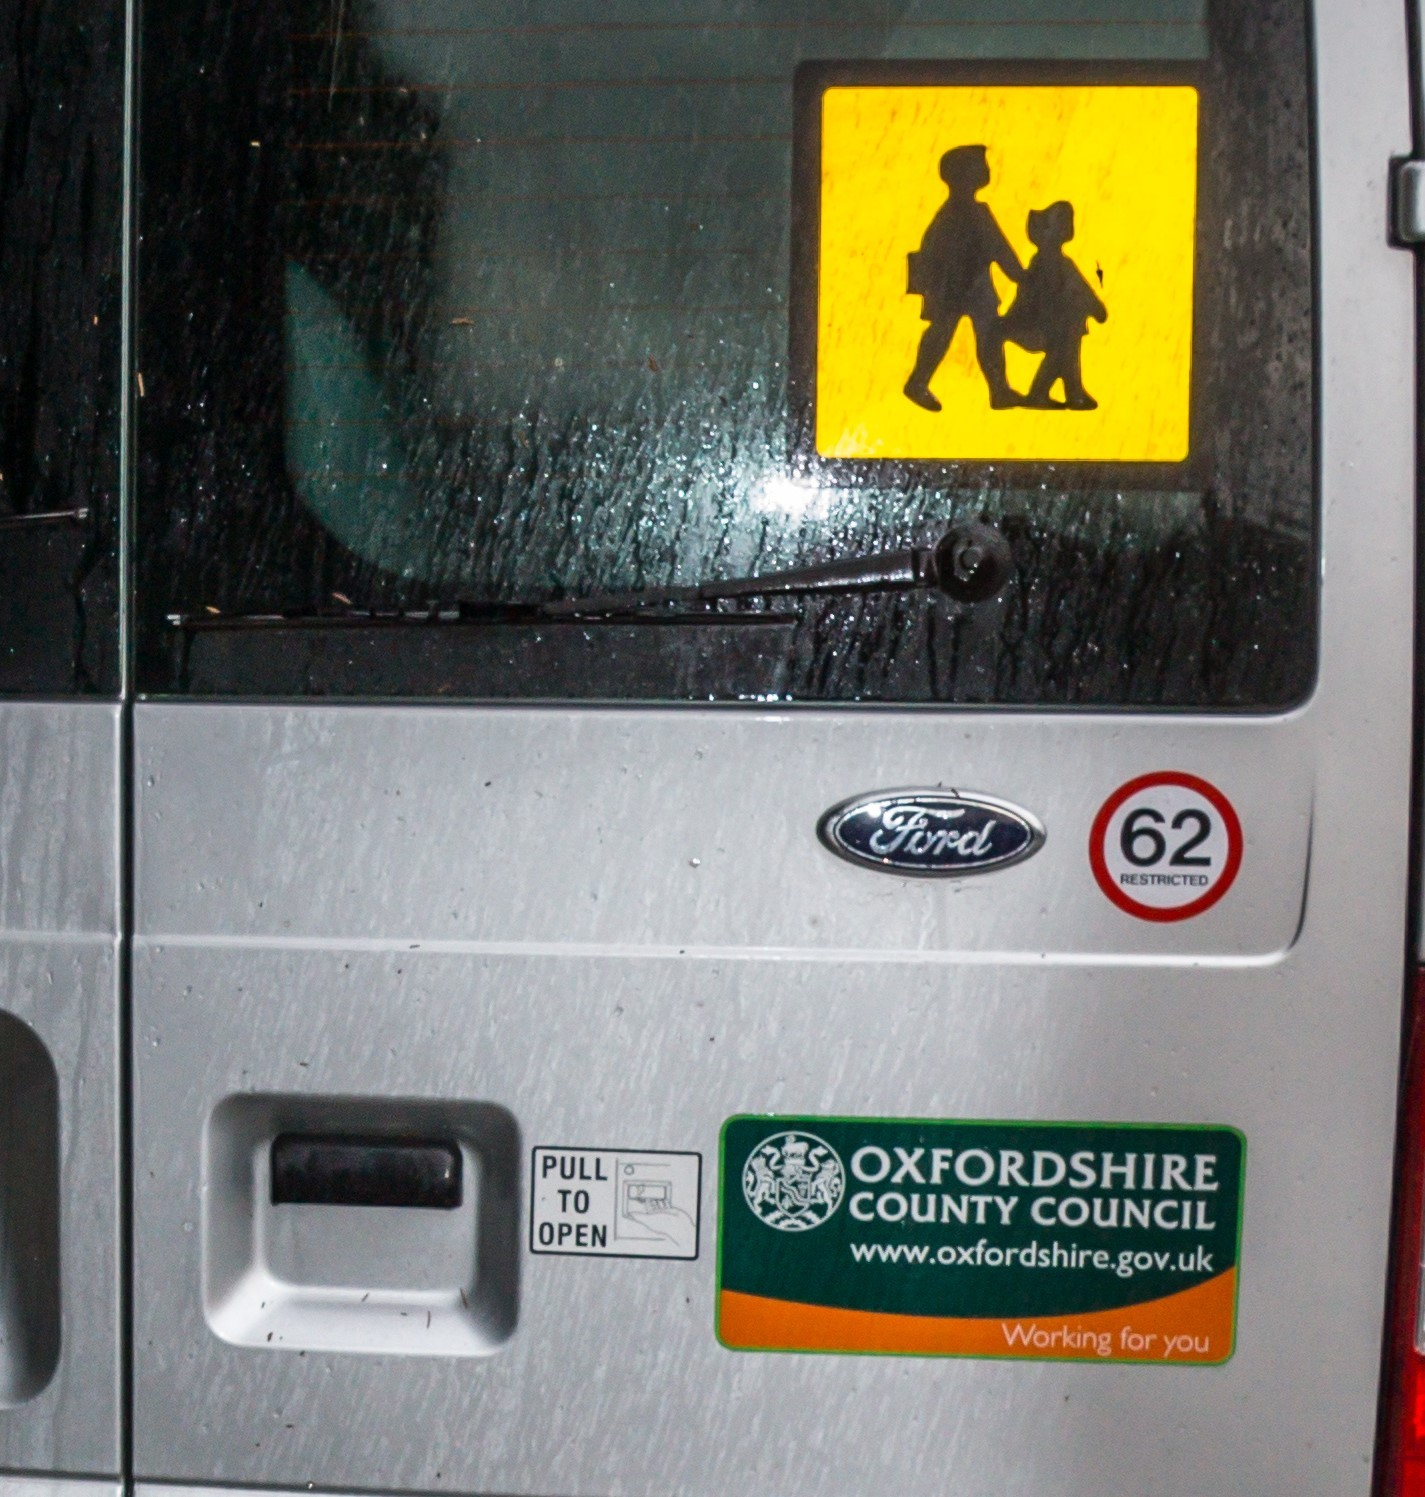 Oxfordshire County Council school minibus. Pic: Greg Blatchford